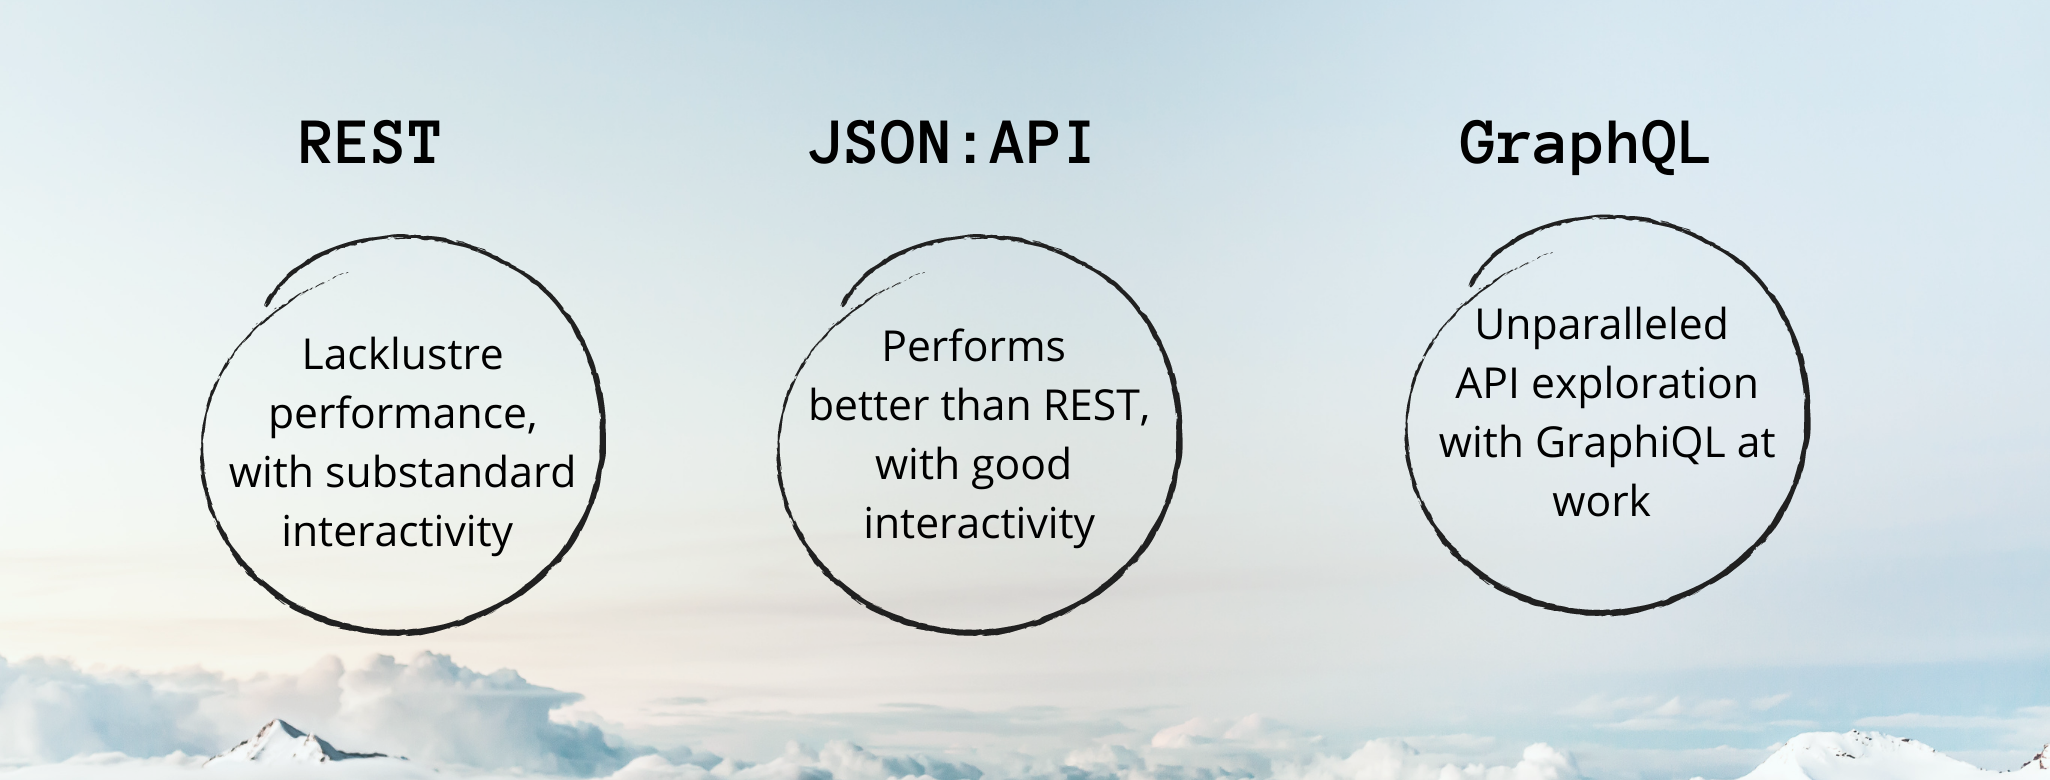 A distinction is shown between the three APIs, REST, JSON and GraphQL, in three circles with regards to API exploration.